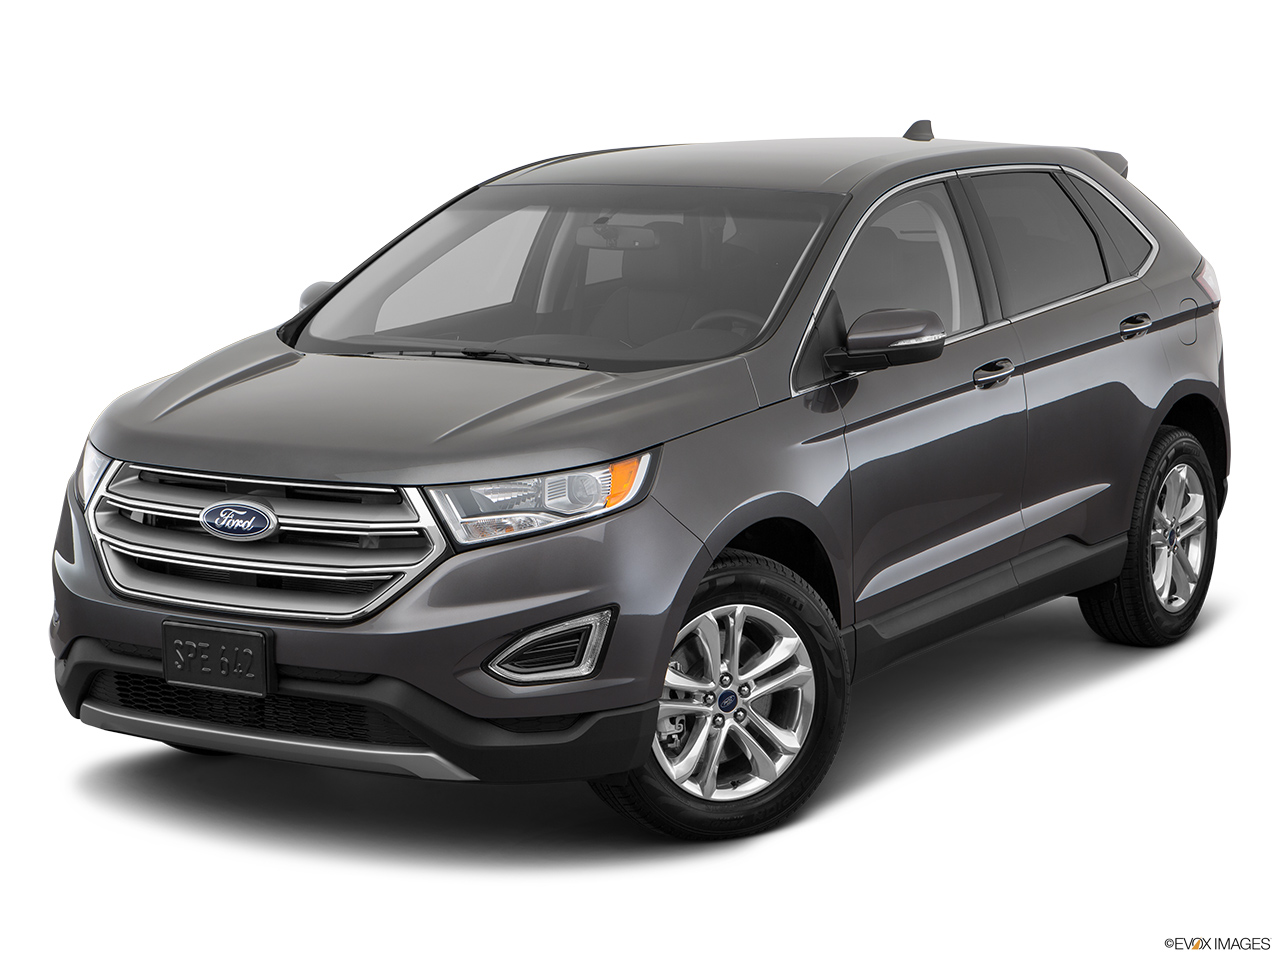 Ford Edge L V Titanium Awd Full Option Kuwait Front